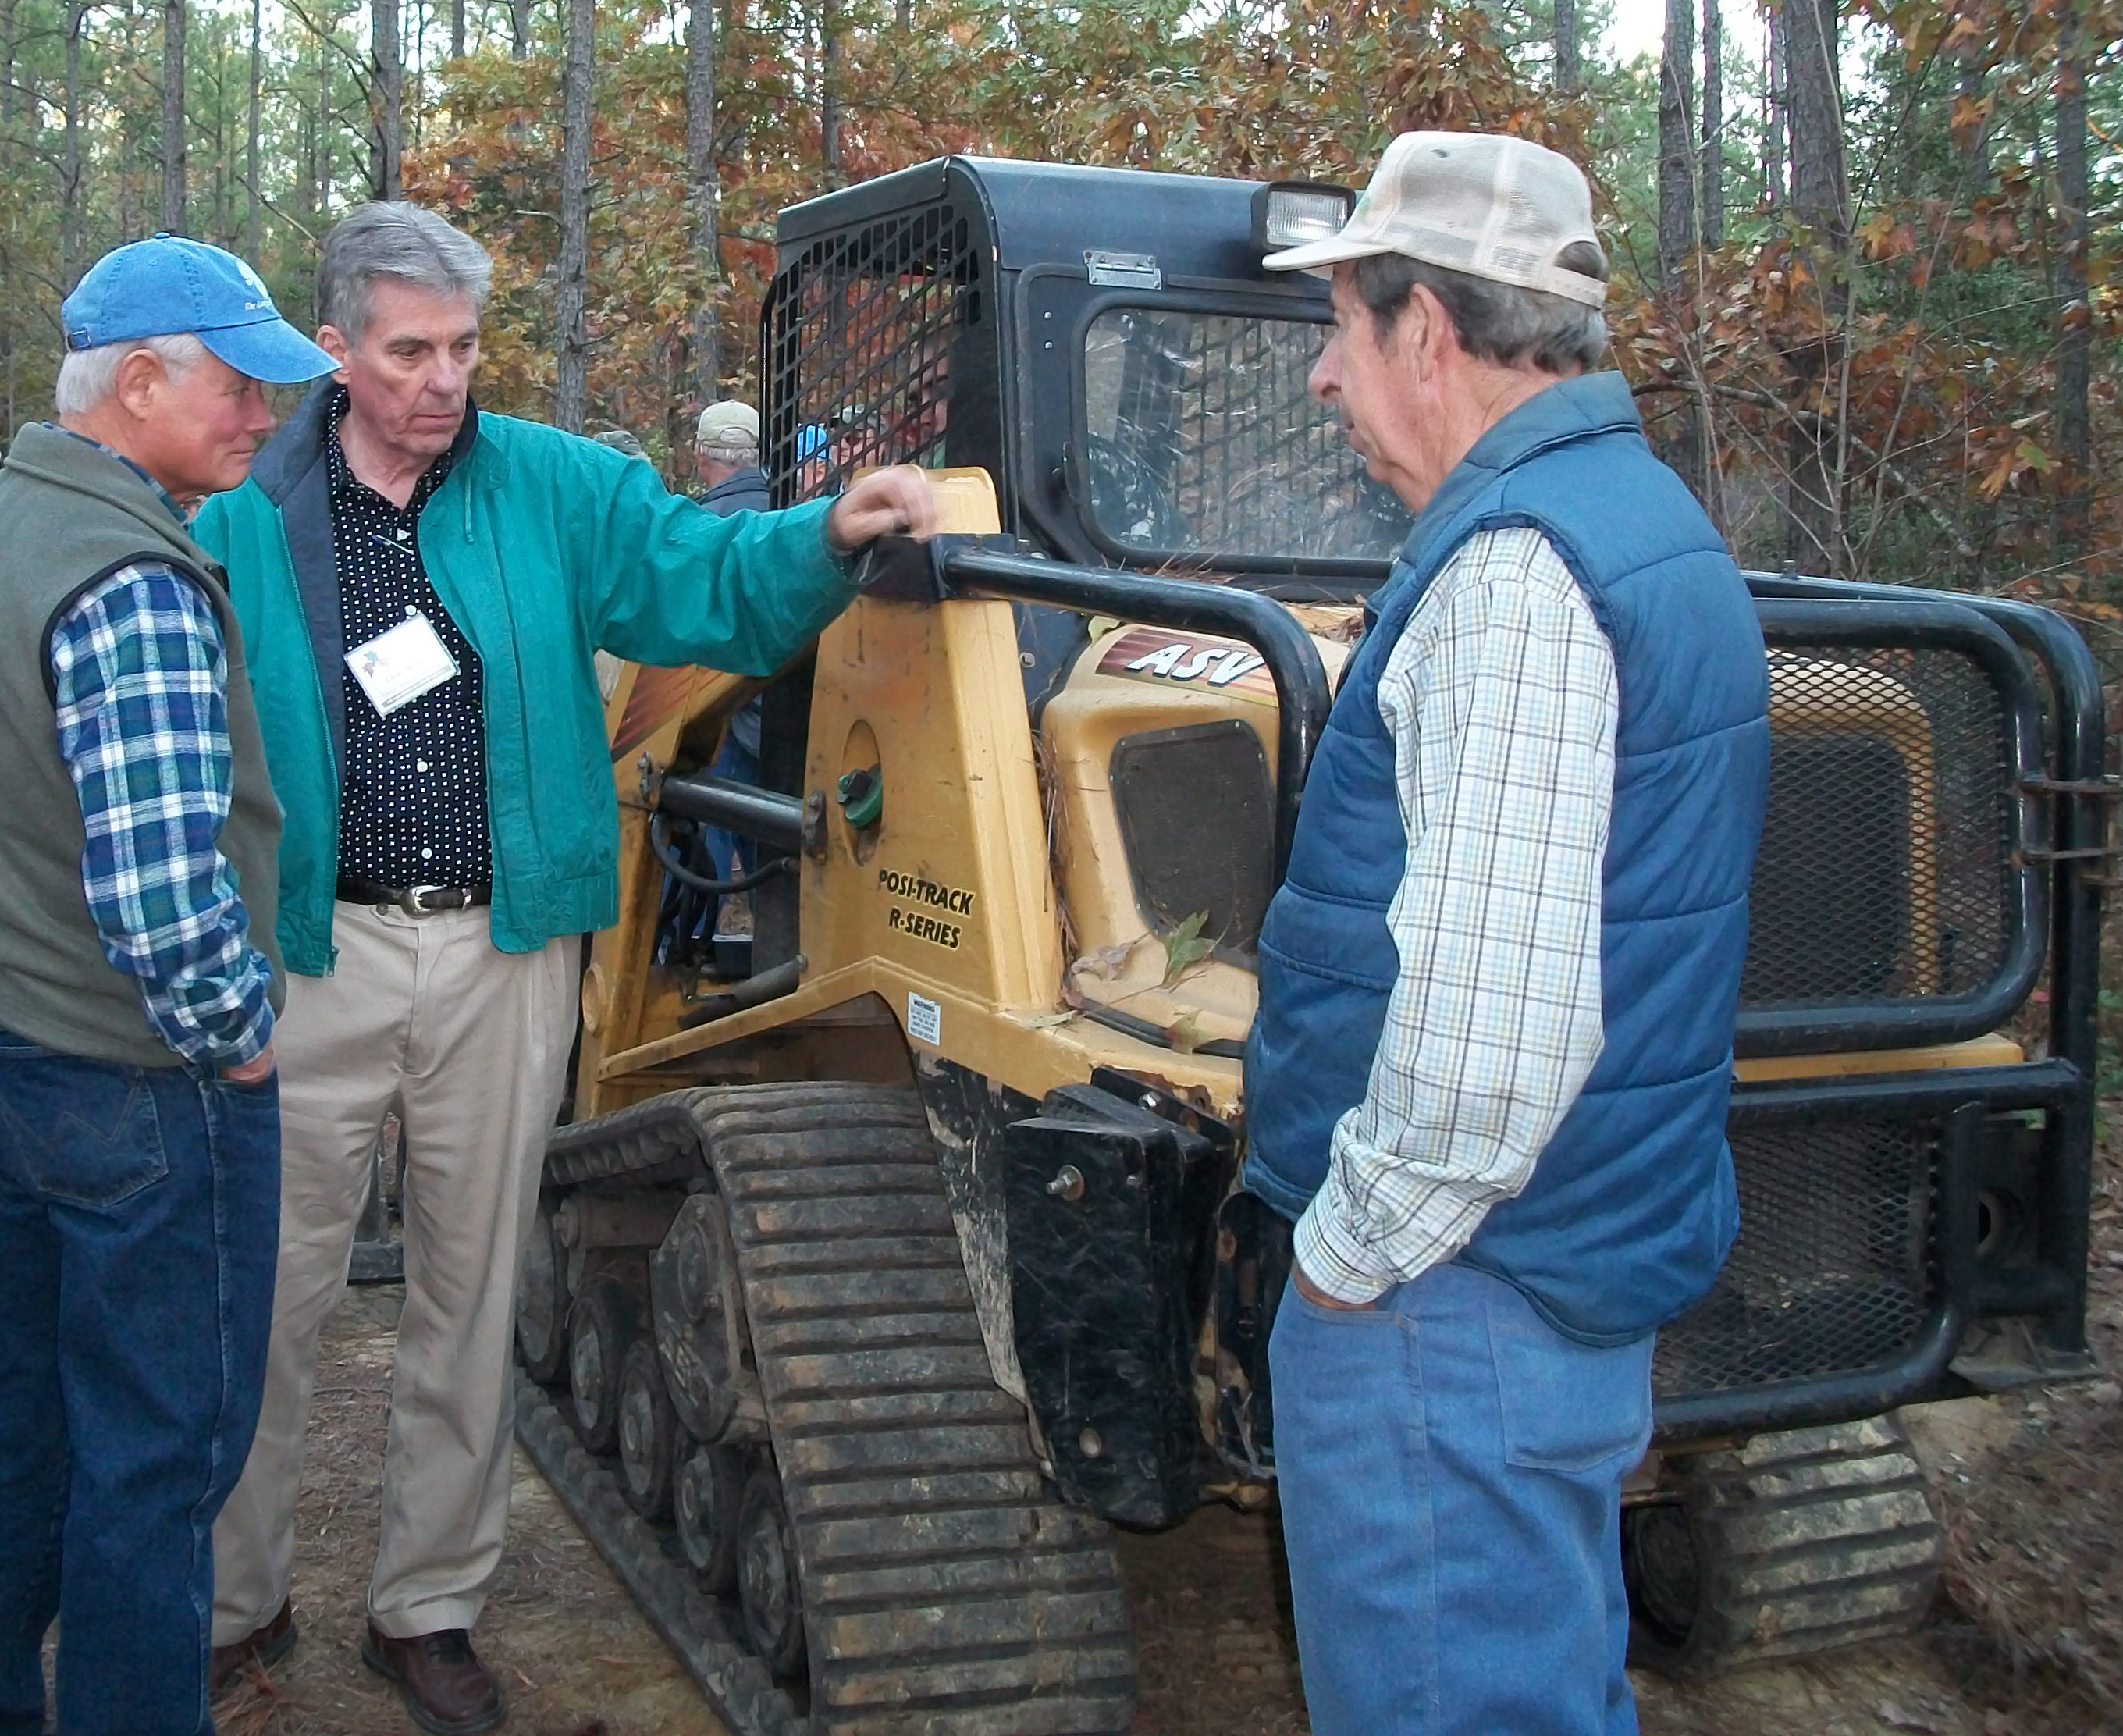 Three men stand looking at a small-scale skidder in a forest.